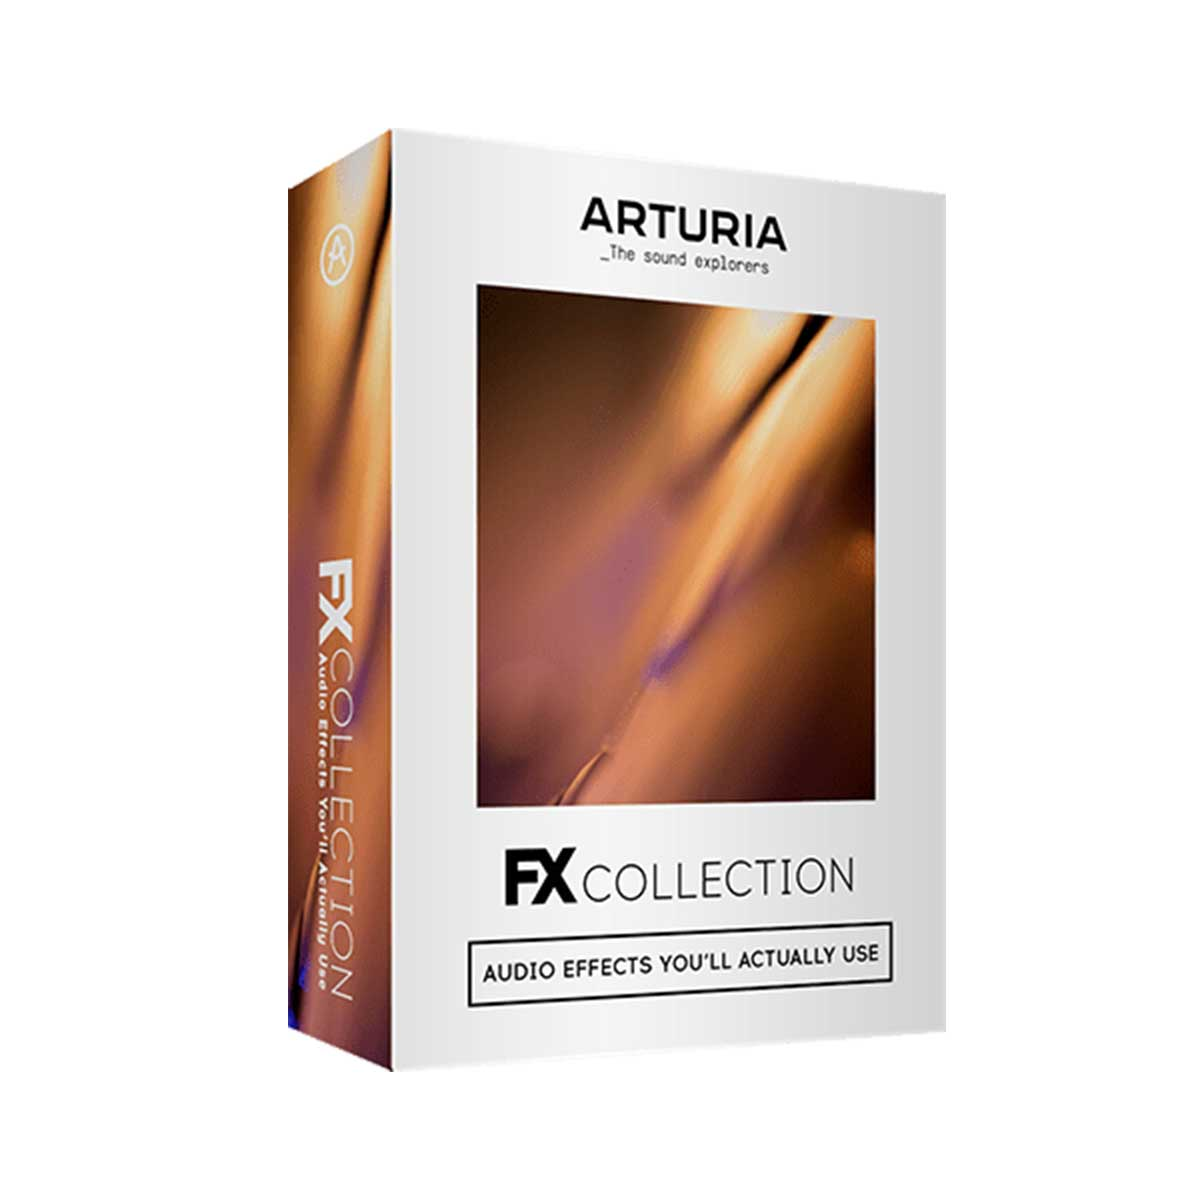 Arturia FX Collection Download Code